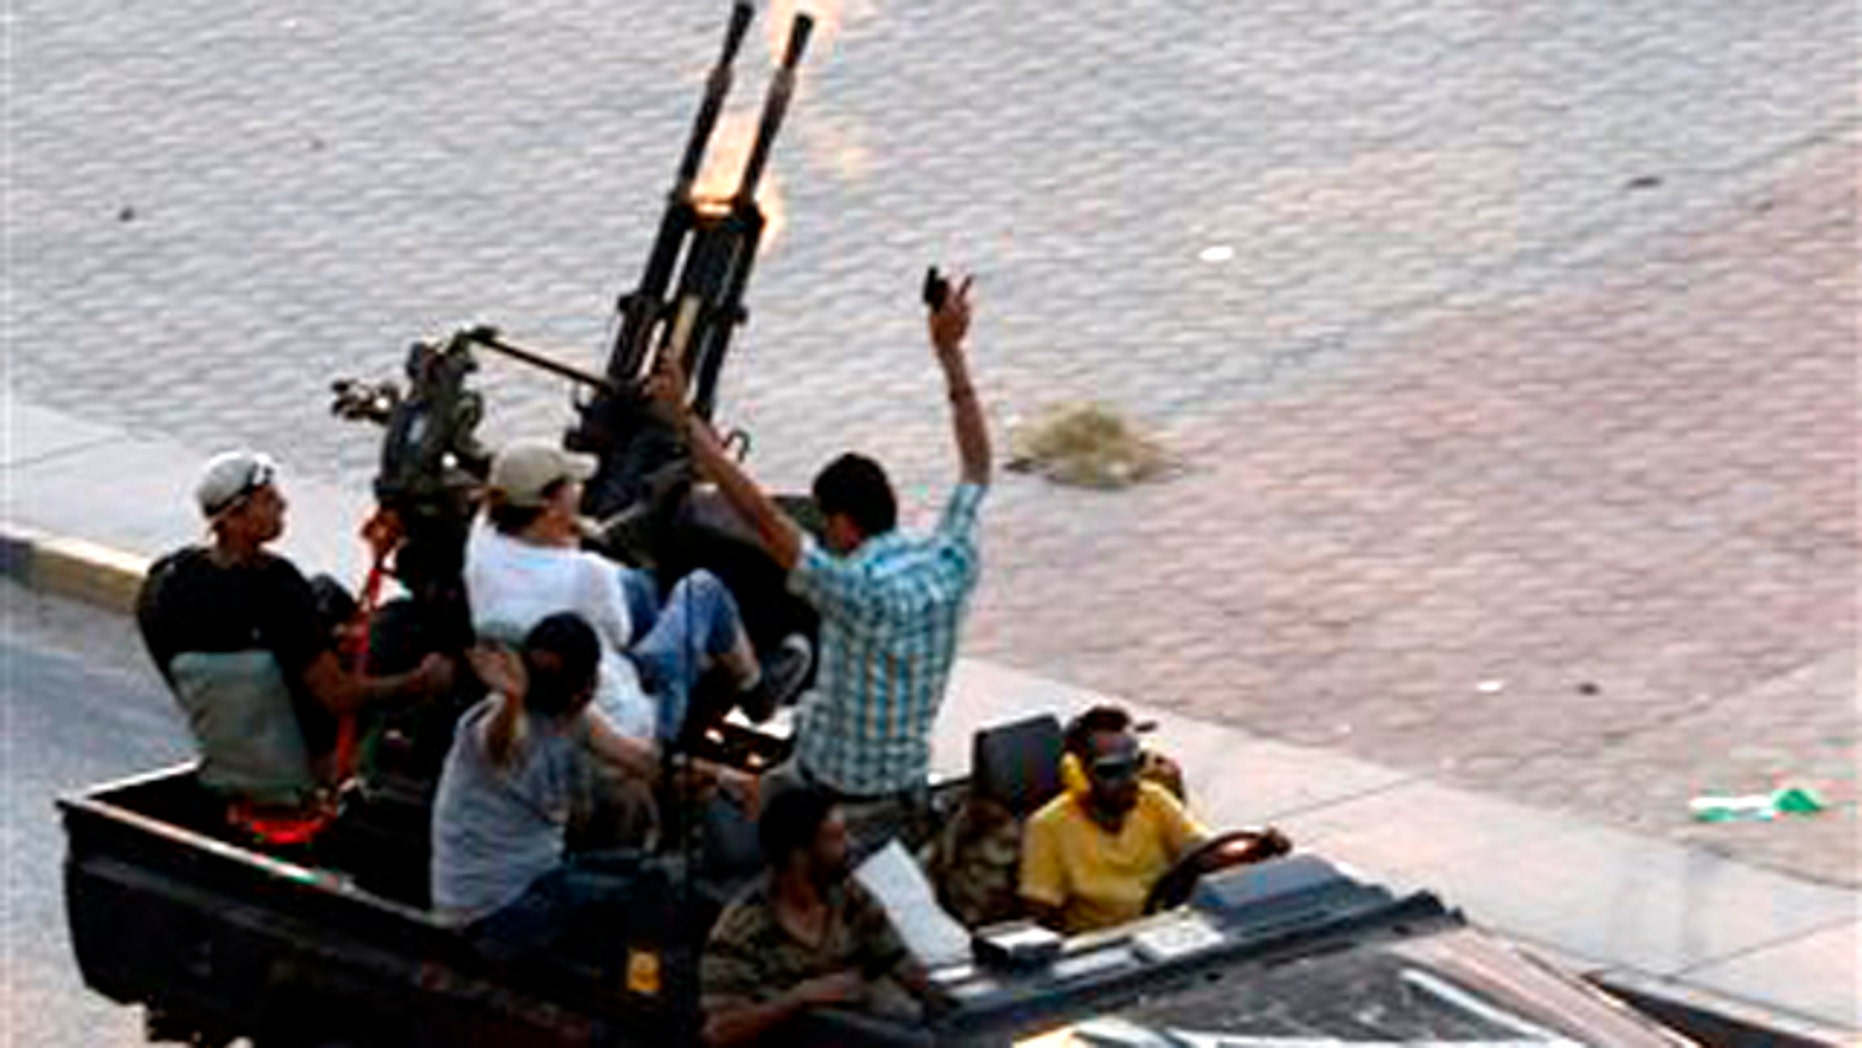 Libyan rebels fire into the air in the Bab El Bahrah district in Tripoli, Tuesday, Aug. 23, 2011. Hundreds of Libyan rebels blasted through the green gates of Moammar Gadhafi's Bab al-Aziziya compound in Tripoli Tuesday after five hours of intense fighting around it.